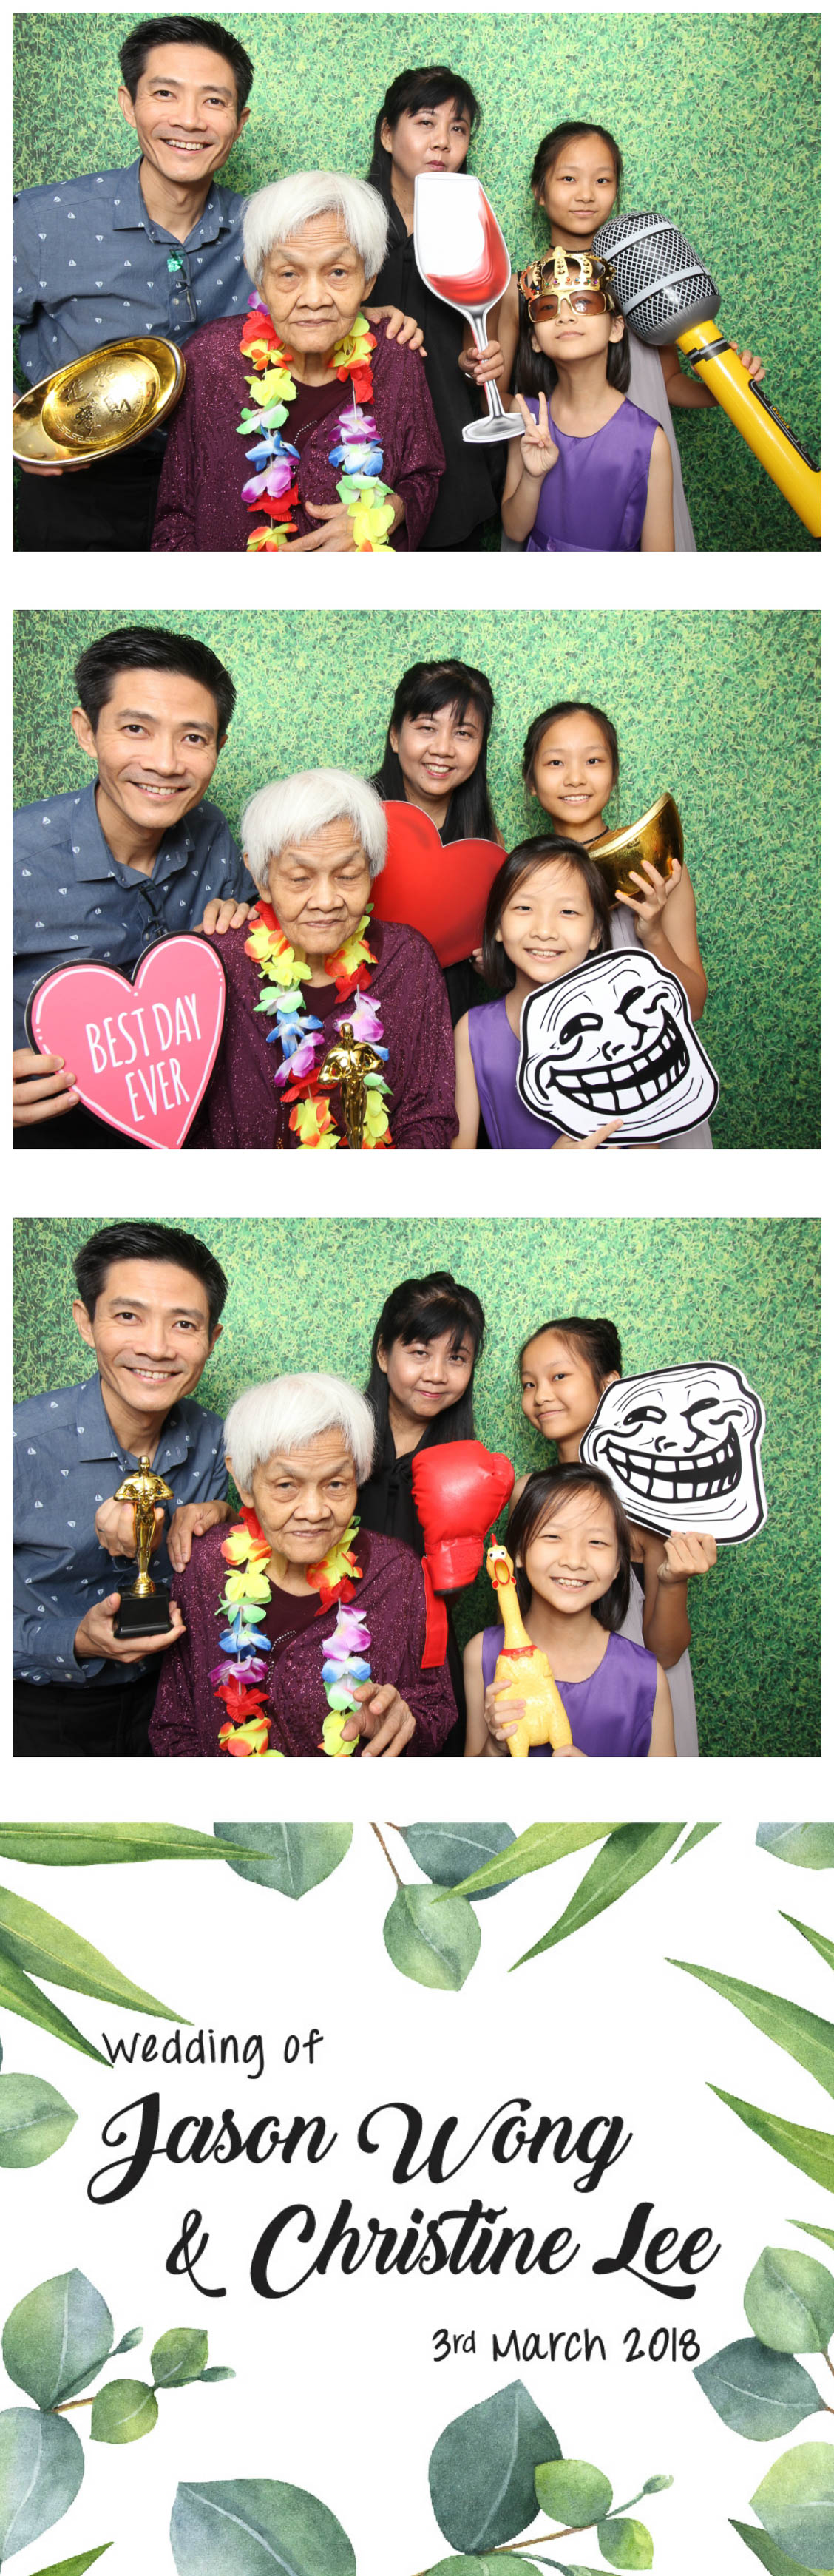 Photobooth 0302-49